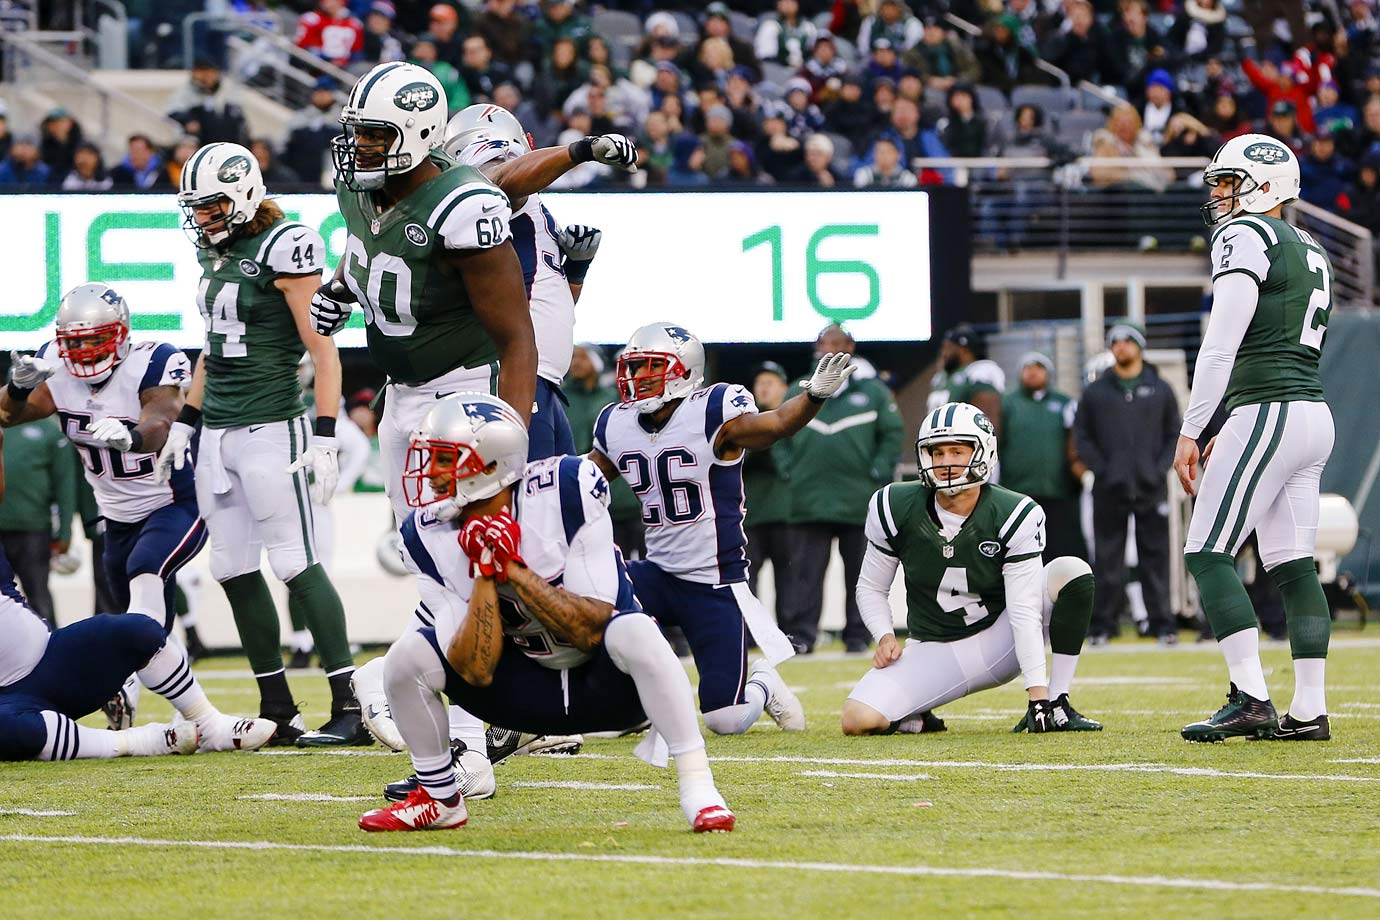 The Jets gave the Patriots another scare in Week 16, but New England emerged from the Meadowlands with the 17-16 win after Jonas Gray scored the go-ahead touchdown early in the fourth quarter following a Geno Smith interception. The Jets had an opportunity to retake the lead with a field goal, but Nick Folk's 52-yard attempt with over five minutes left fell short.